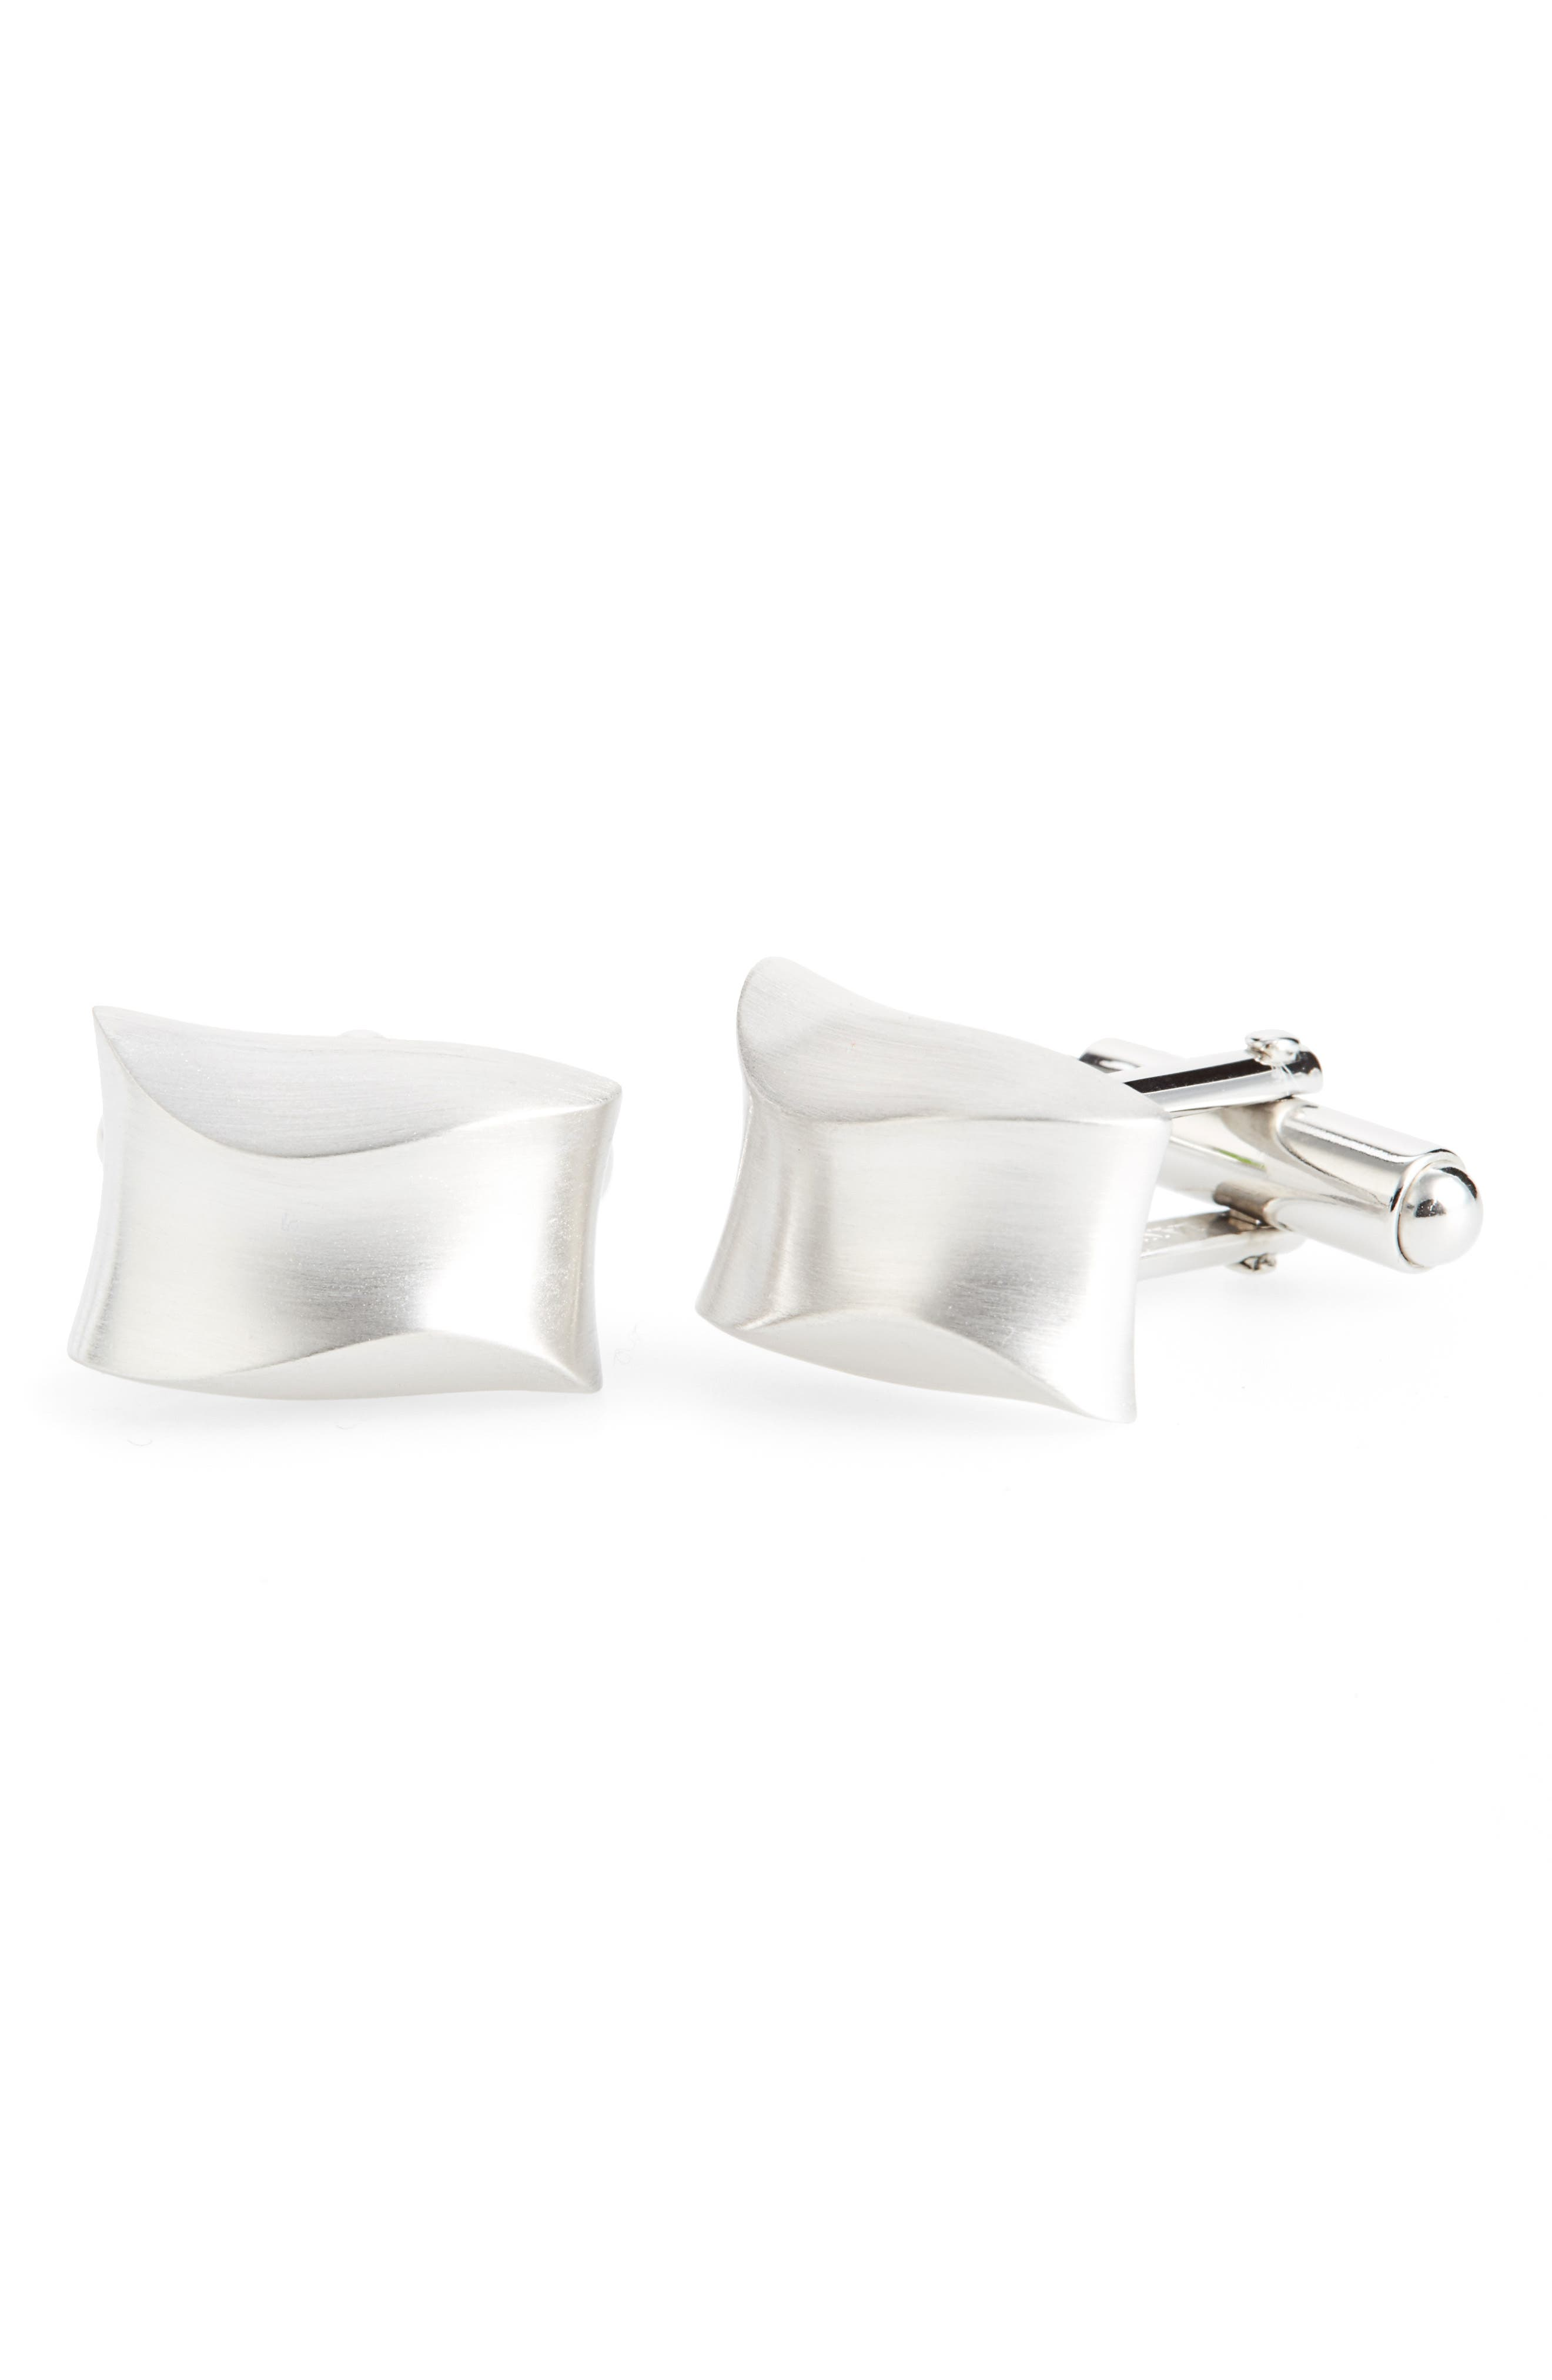 Curved Cuff Links,                             Main thumbnail 1, color,                             040